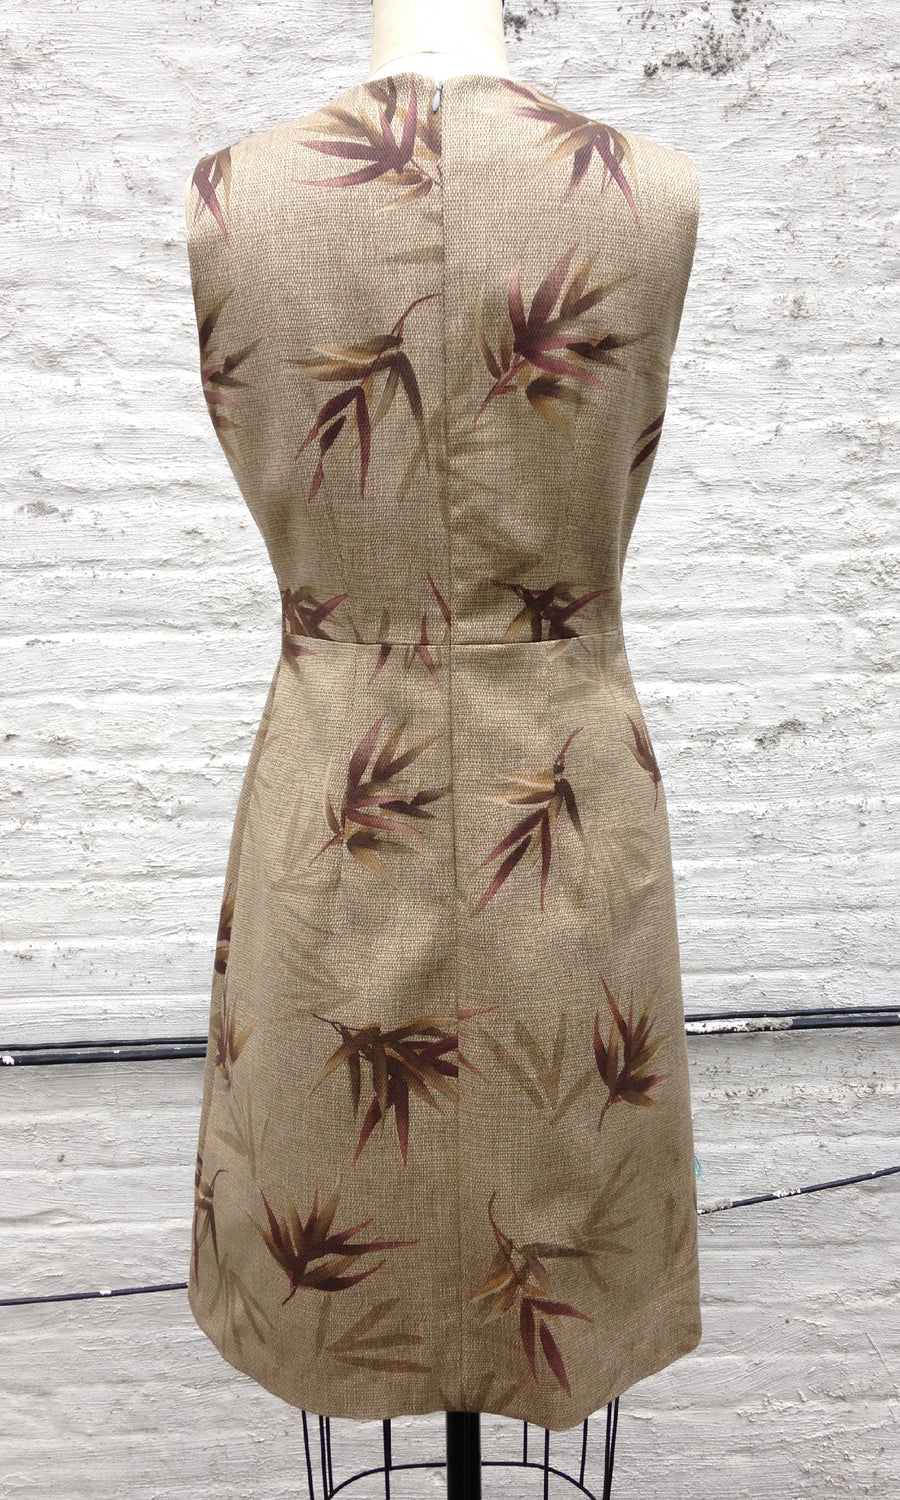 Bamboo Print Sheath Dress, size Small